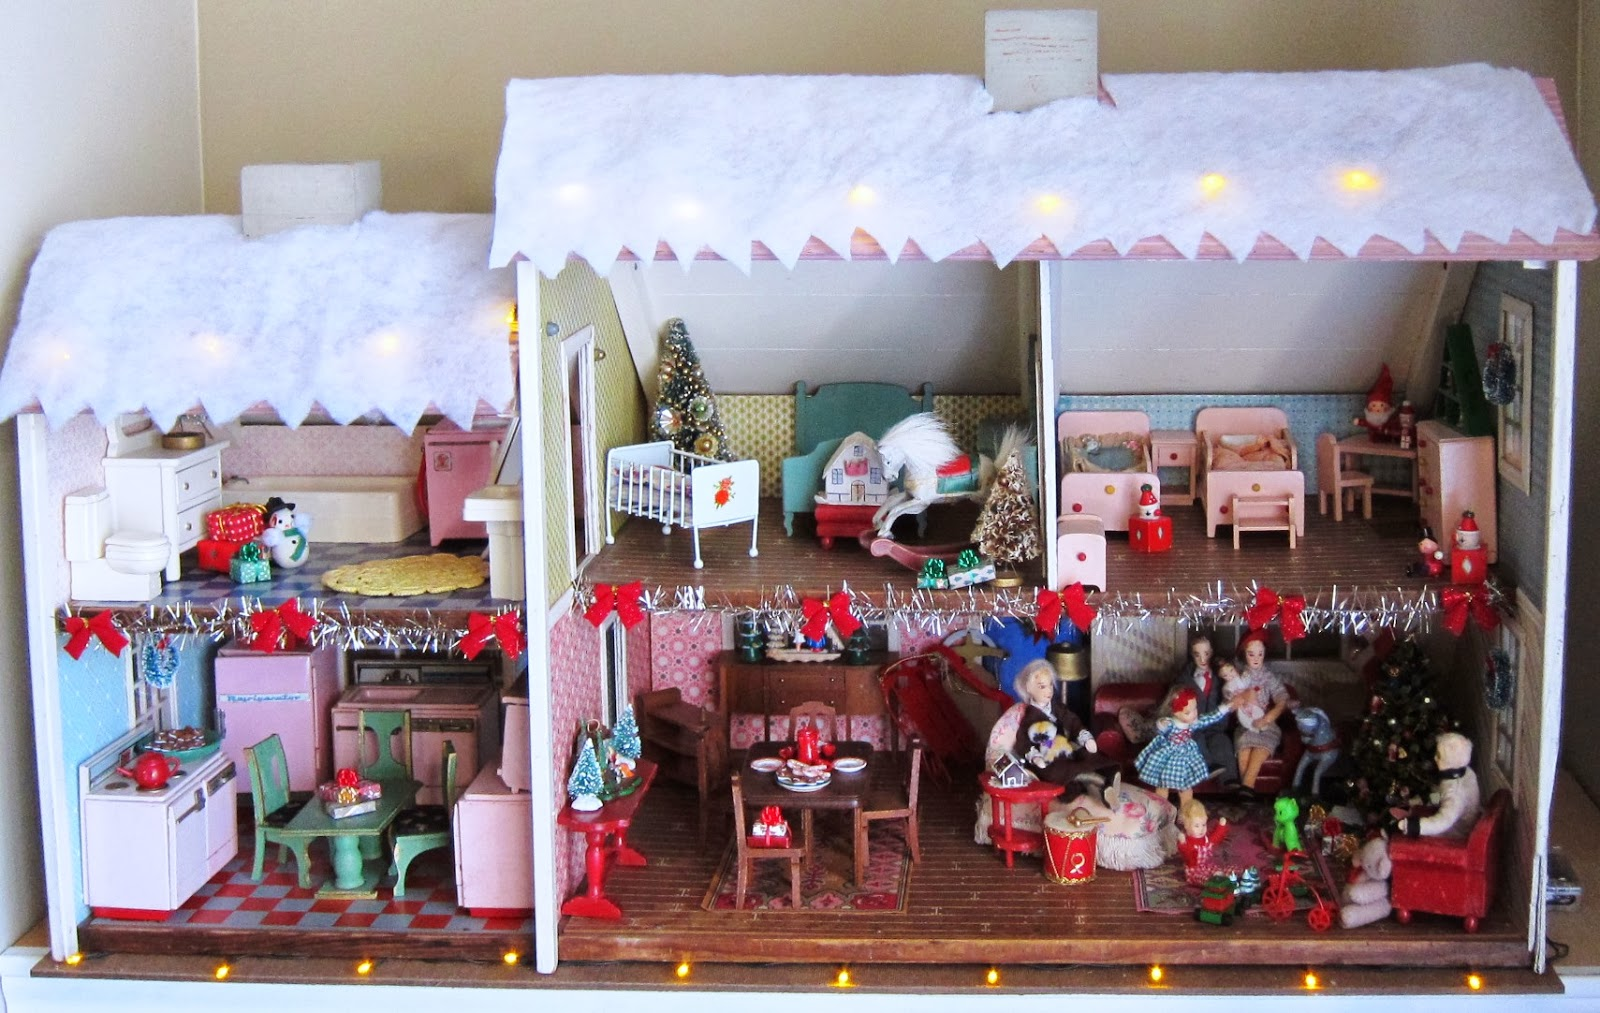 Ideas To Decorate Bathroom Corey Moortgat Collage Artist Christmas Dollhouse